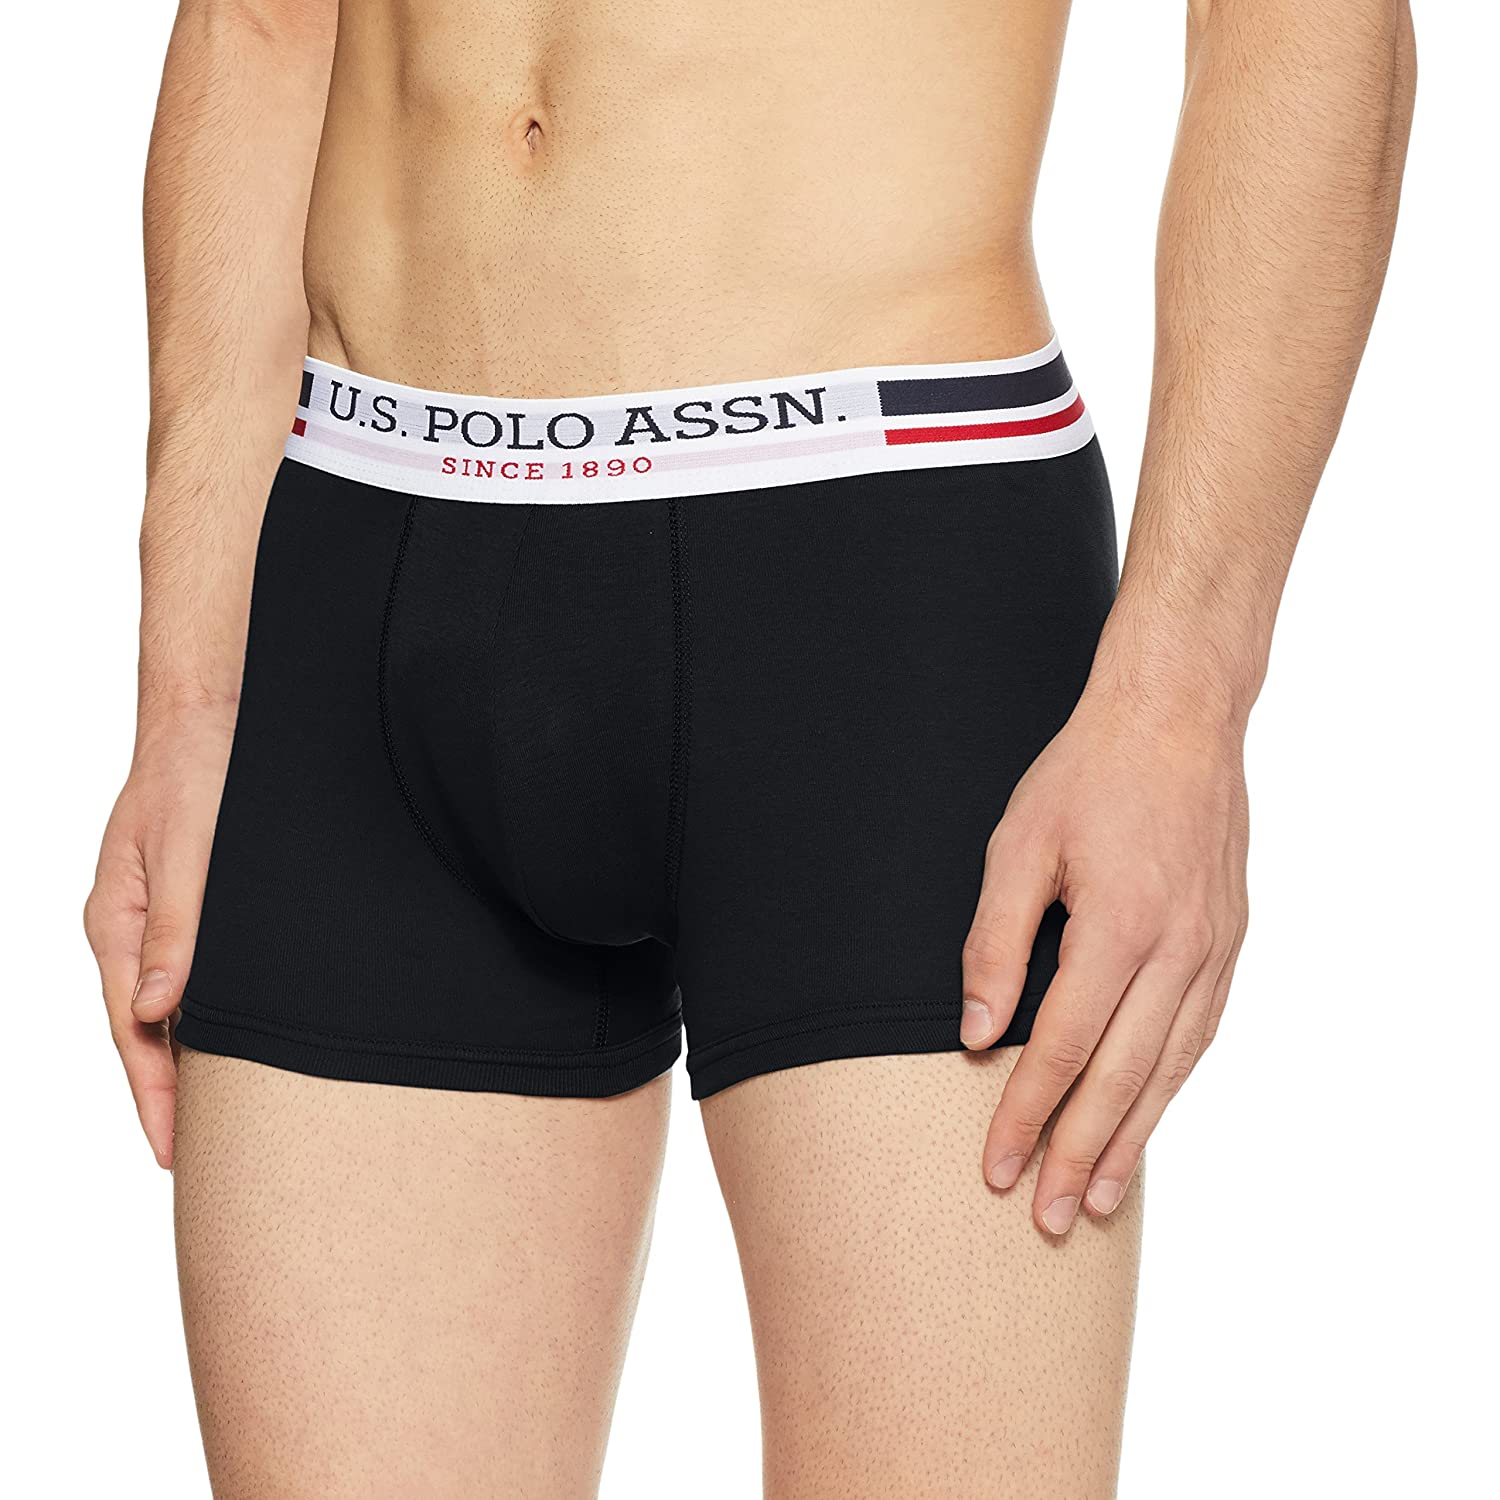 U.S. Polo Assn. Men's Trunks